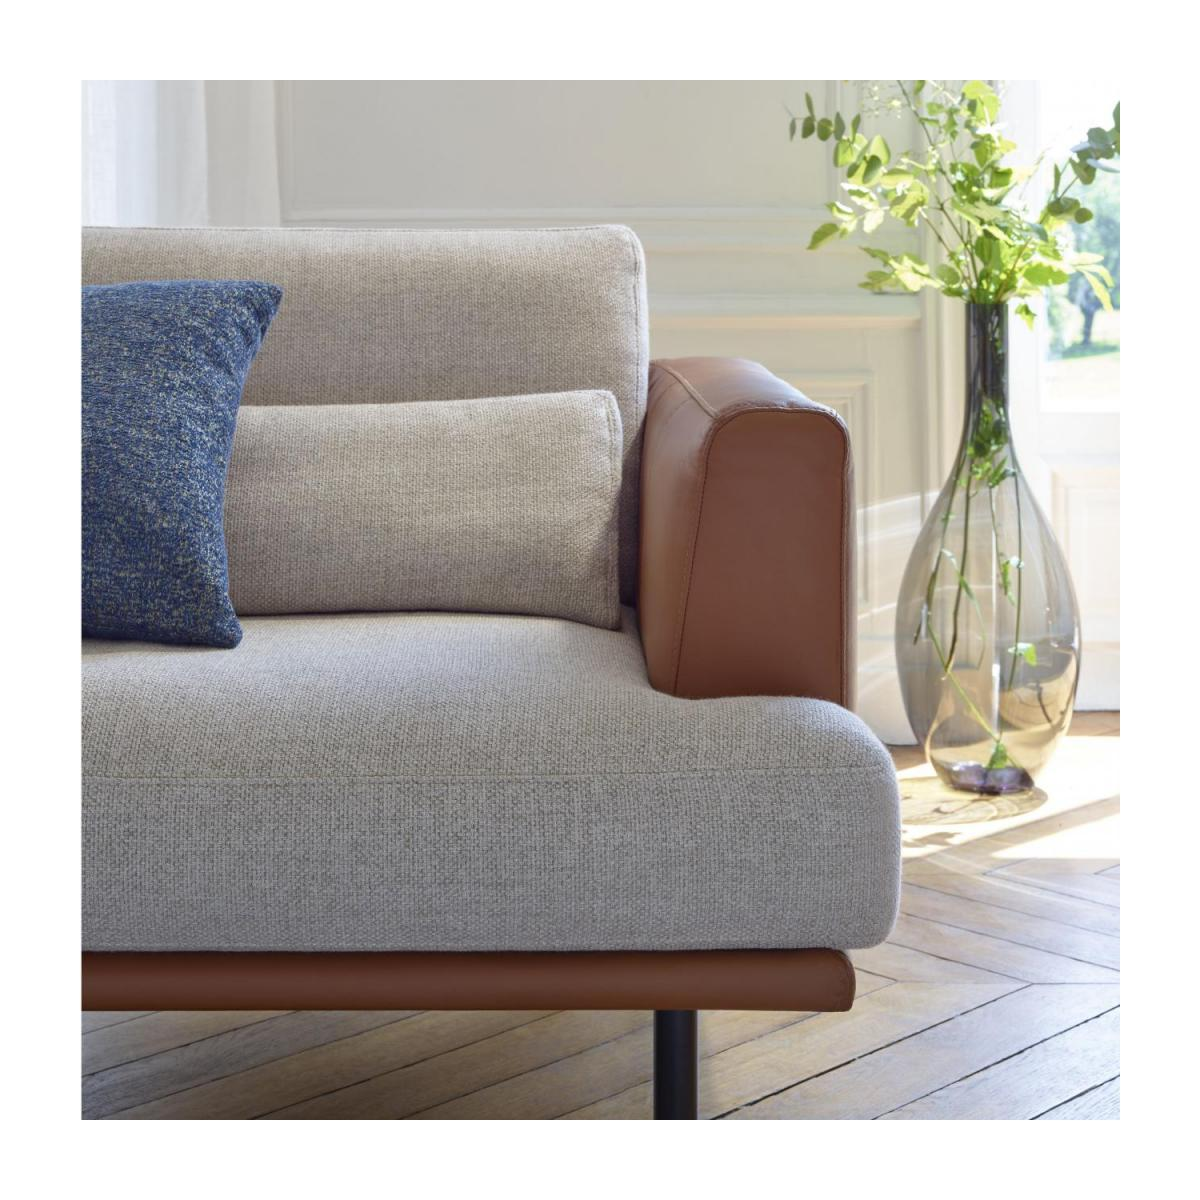 2 seater sofa in Super Velvet fabric, silver grey with base and armrests in brown leather n°3